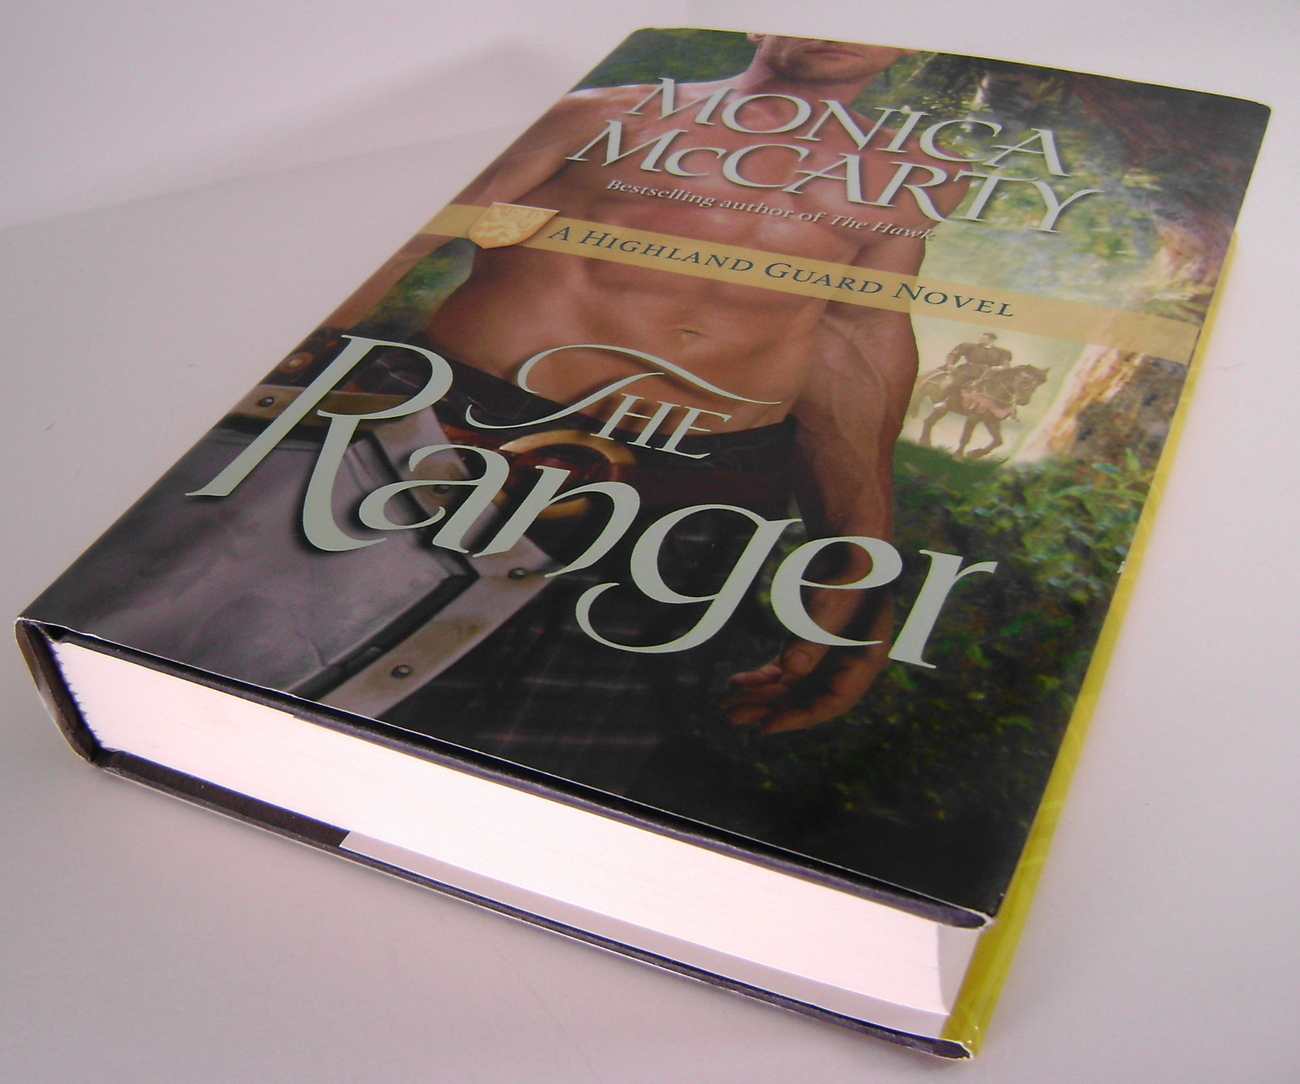 Monica McCarty The Ranger A Highland Guard Novel BCE HC